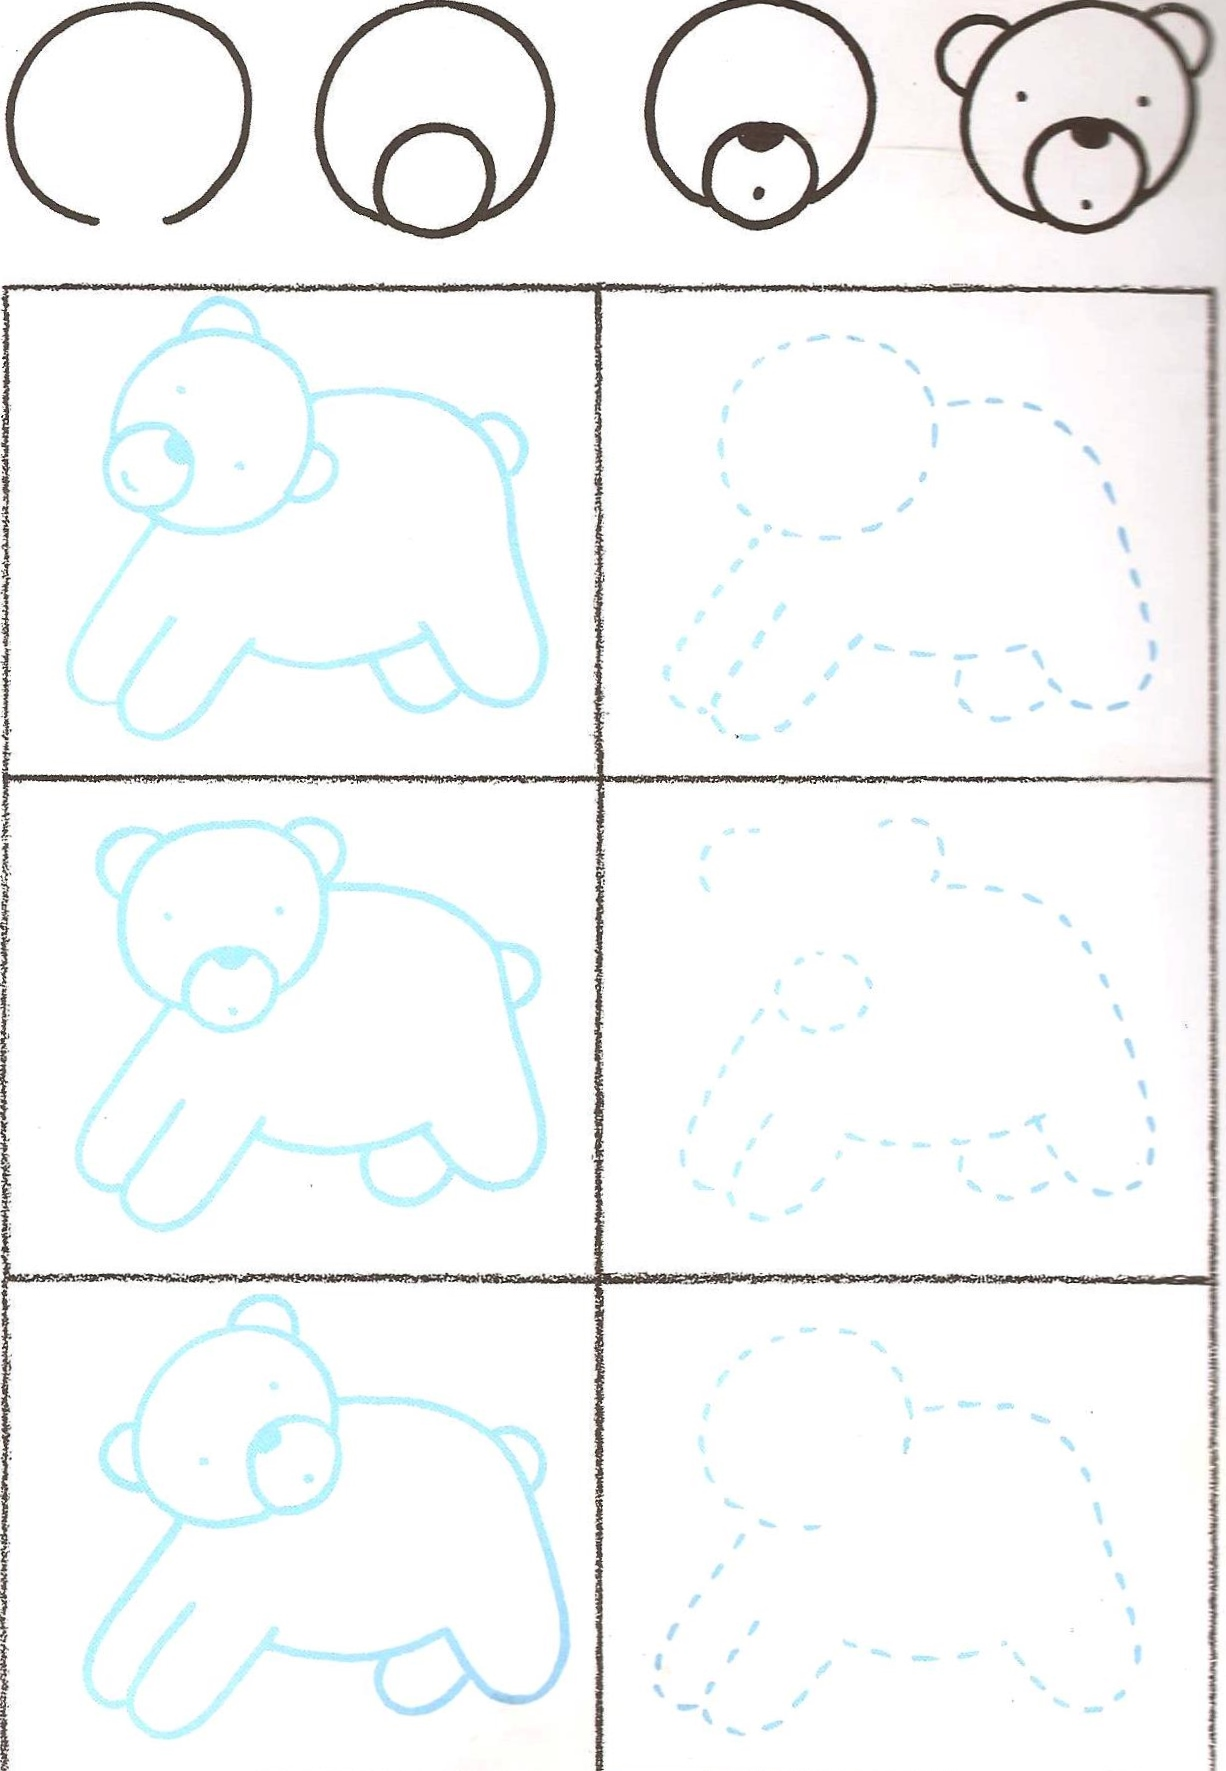 Dessiner un ours mary 39 s world - Ours a dessiner ...